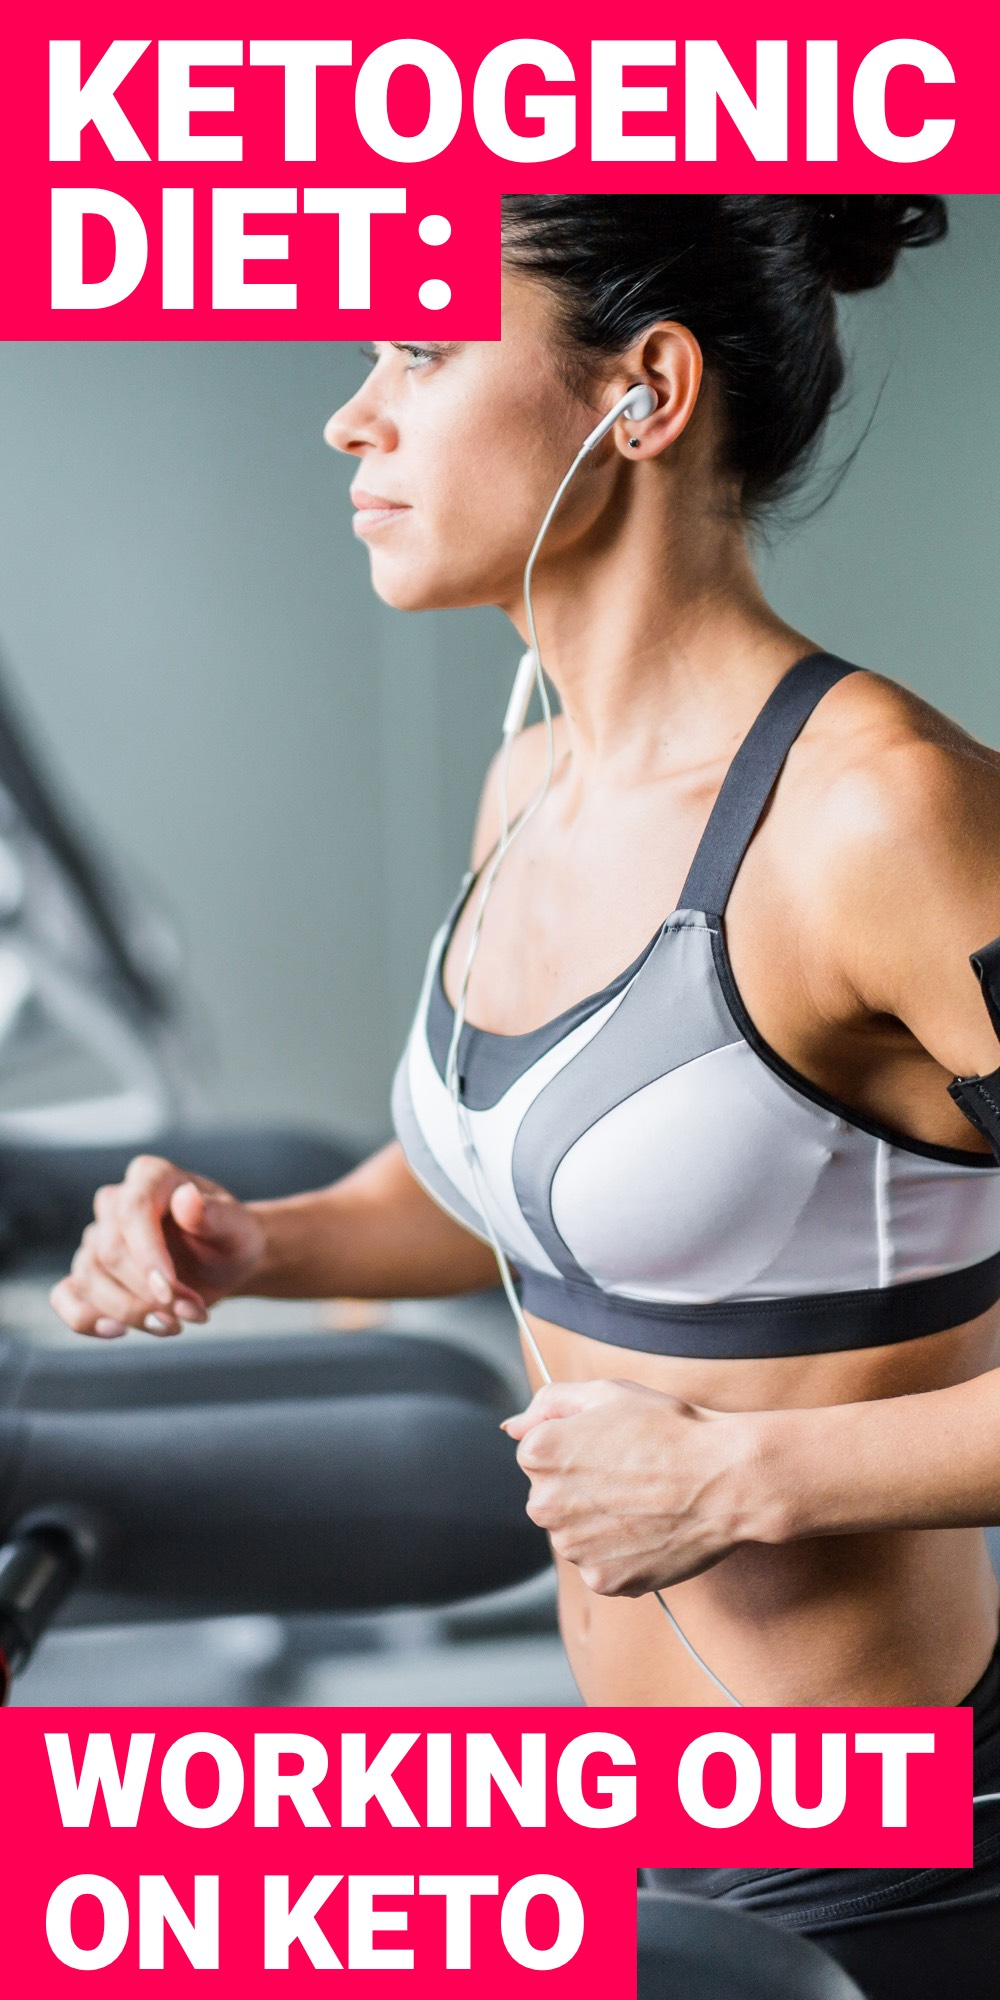 Working out on a ketogenic diet will have a huge affect on your body. But what kind of impact will it have?